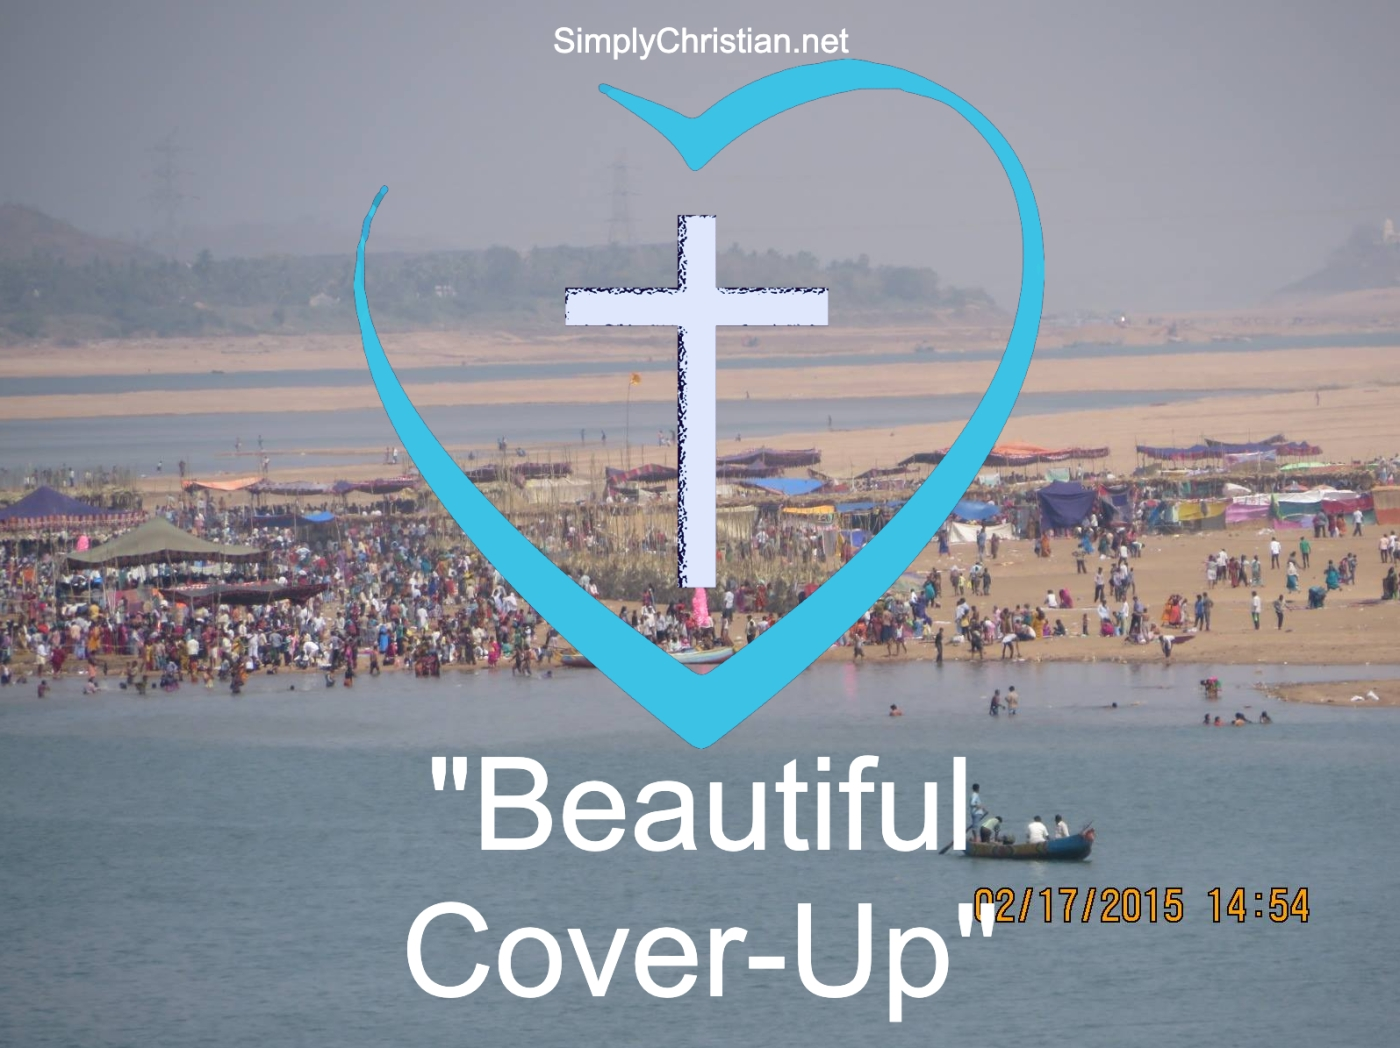 Dave Nance OpenToJesus Simply Christian Beautiful Cover-up